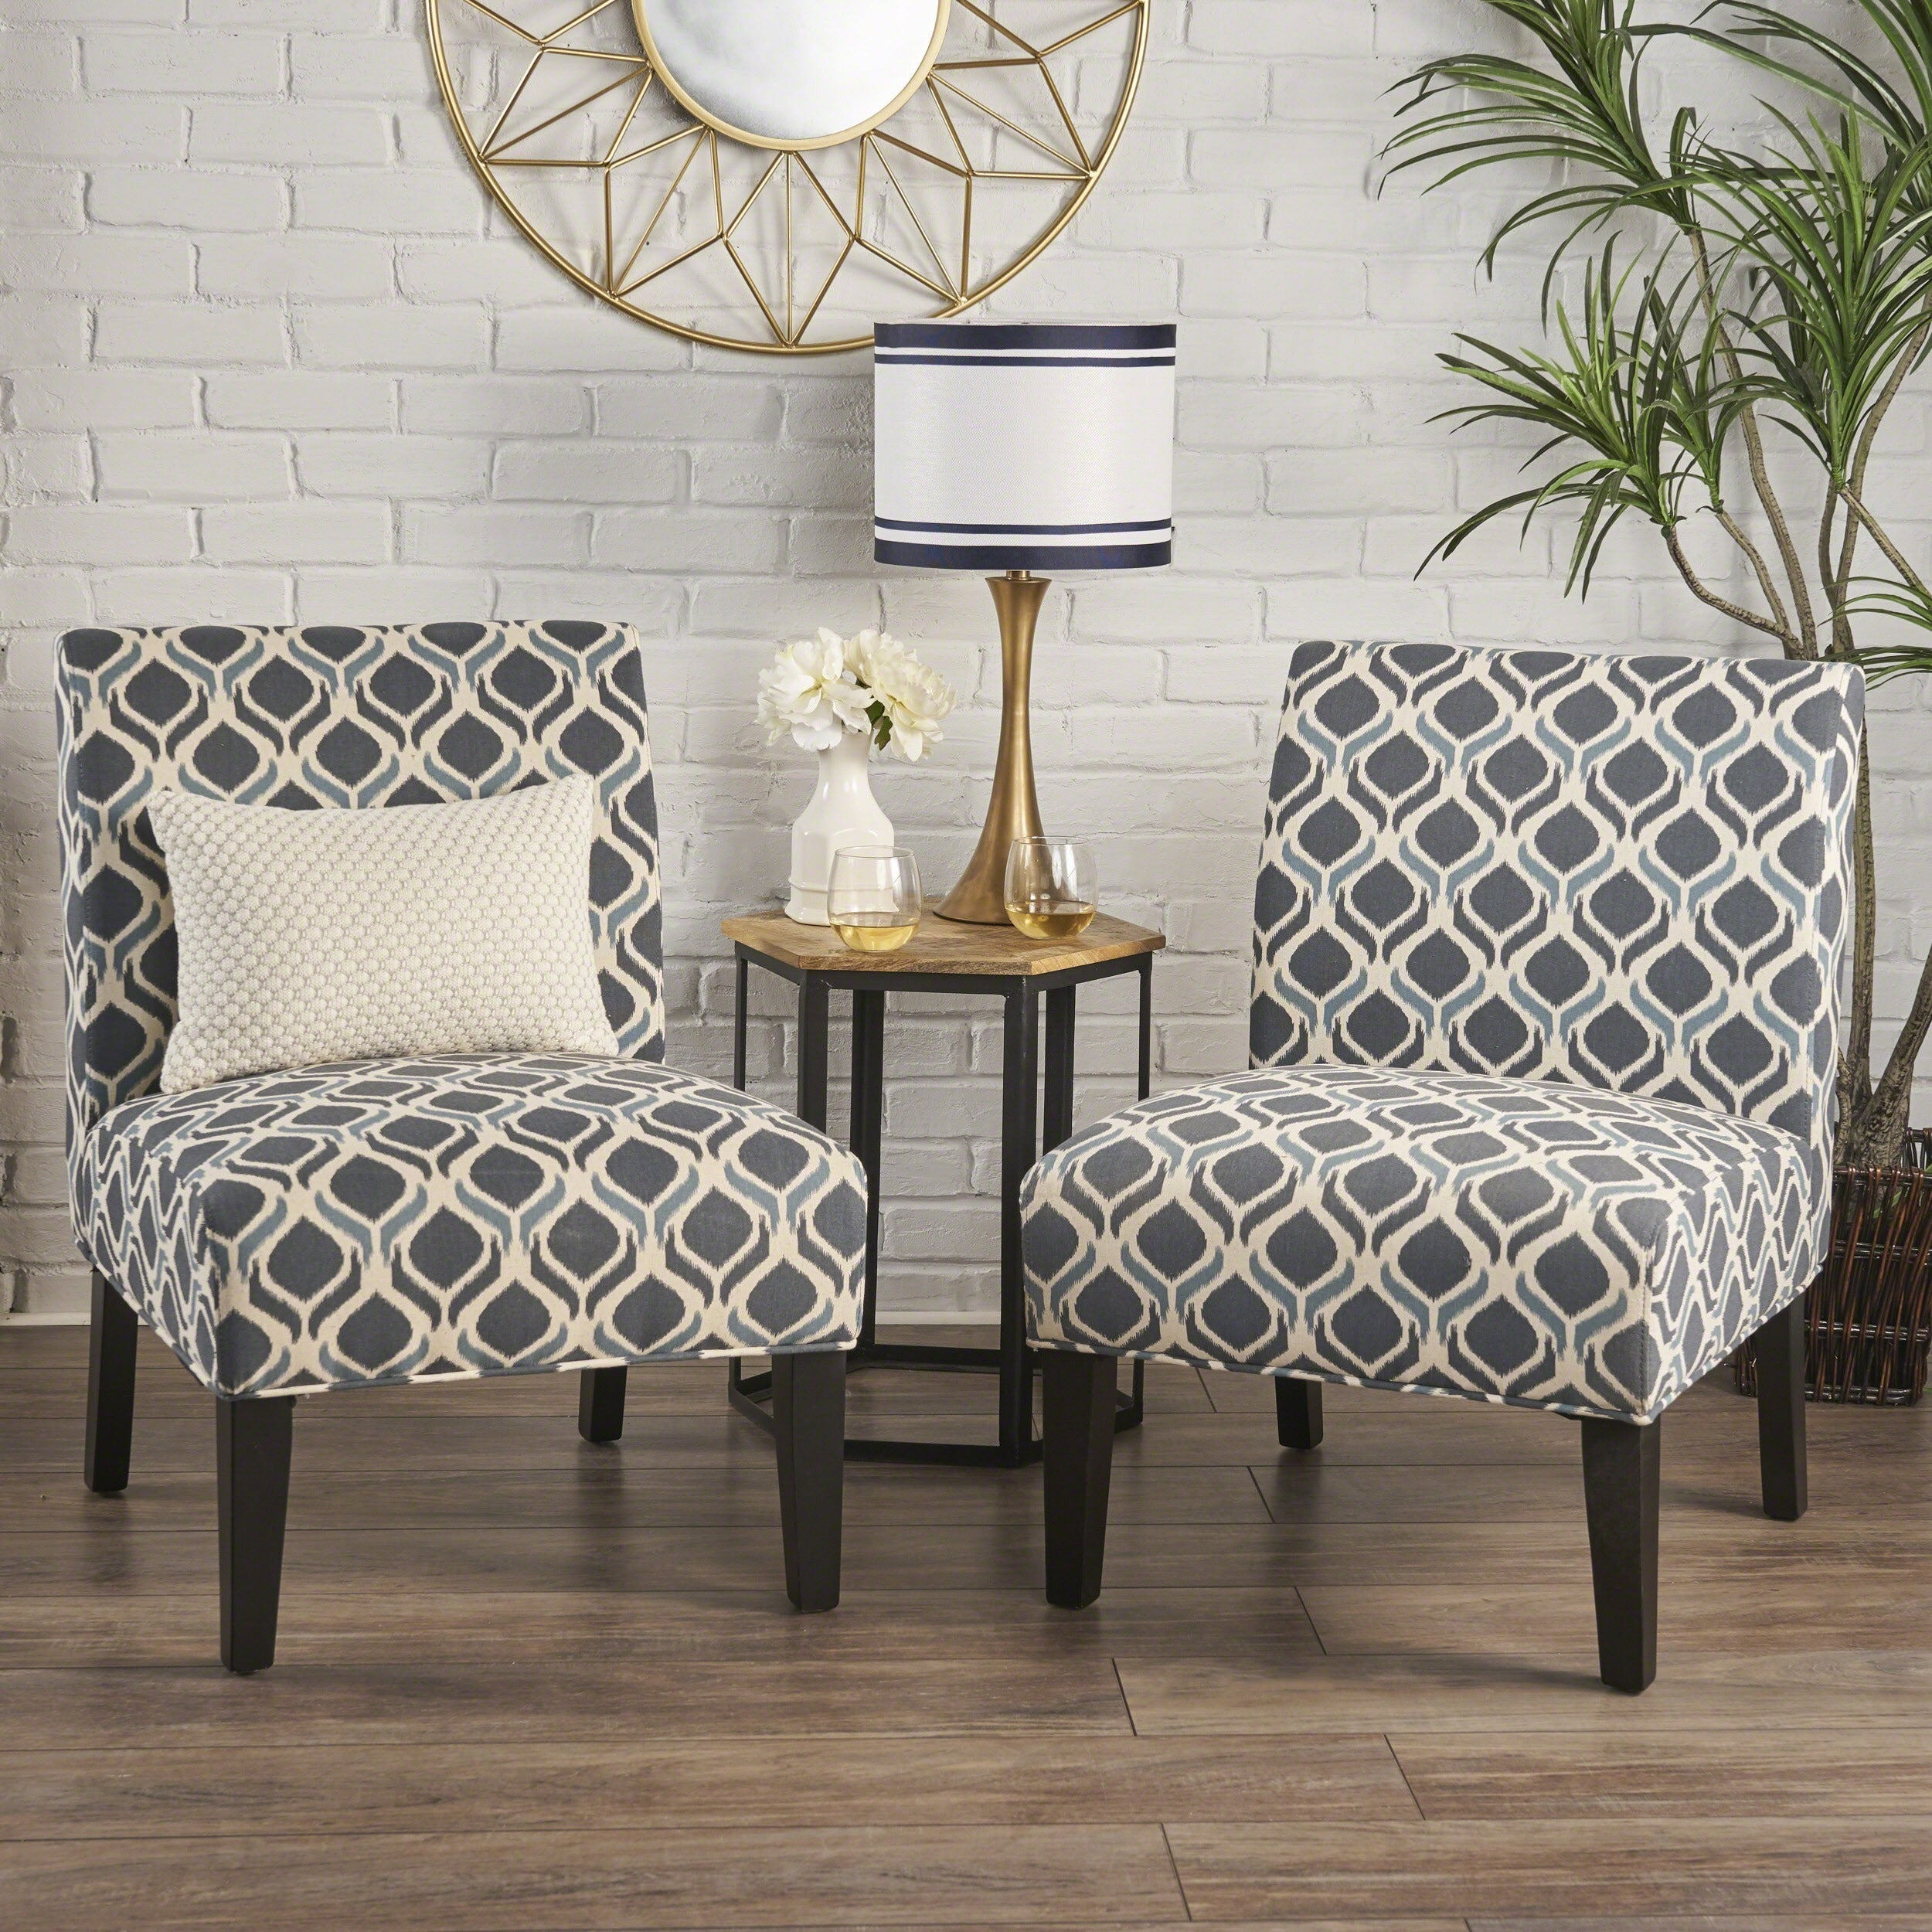 Shop Saloon Contemporary Fabric Slipper Accent Chair (Set of 2) by